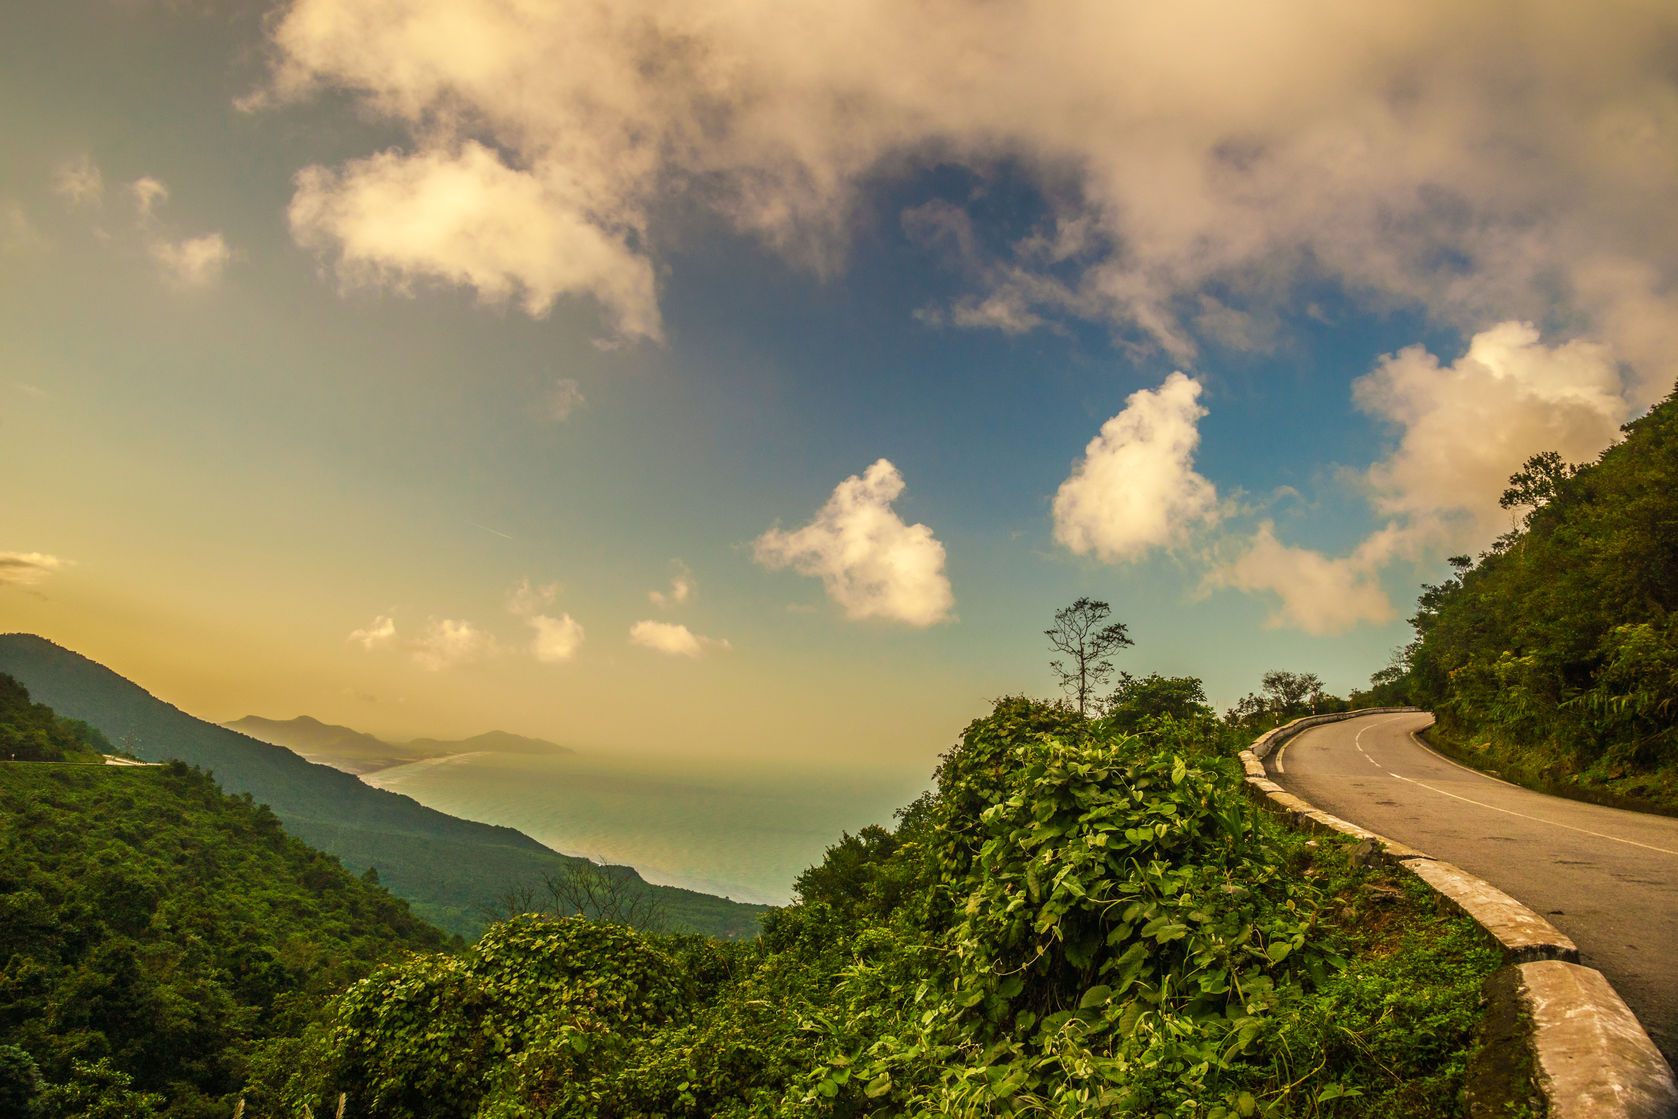 The Guardian, UK magazine, has listed Hai Van (Sea Cloud)Pass in Vietnam among the top 10 great scenic drives in the world. Source: the internet